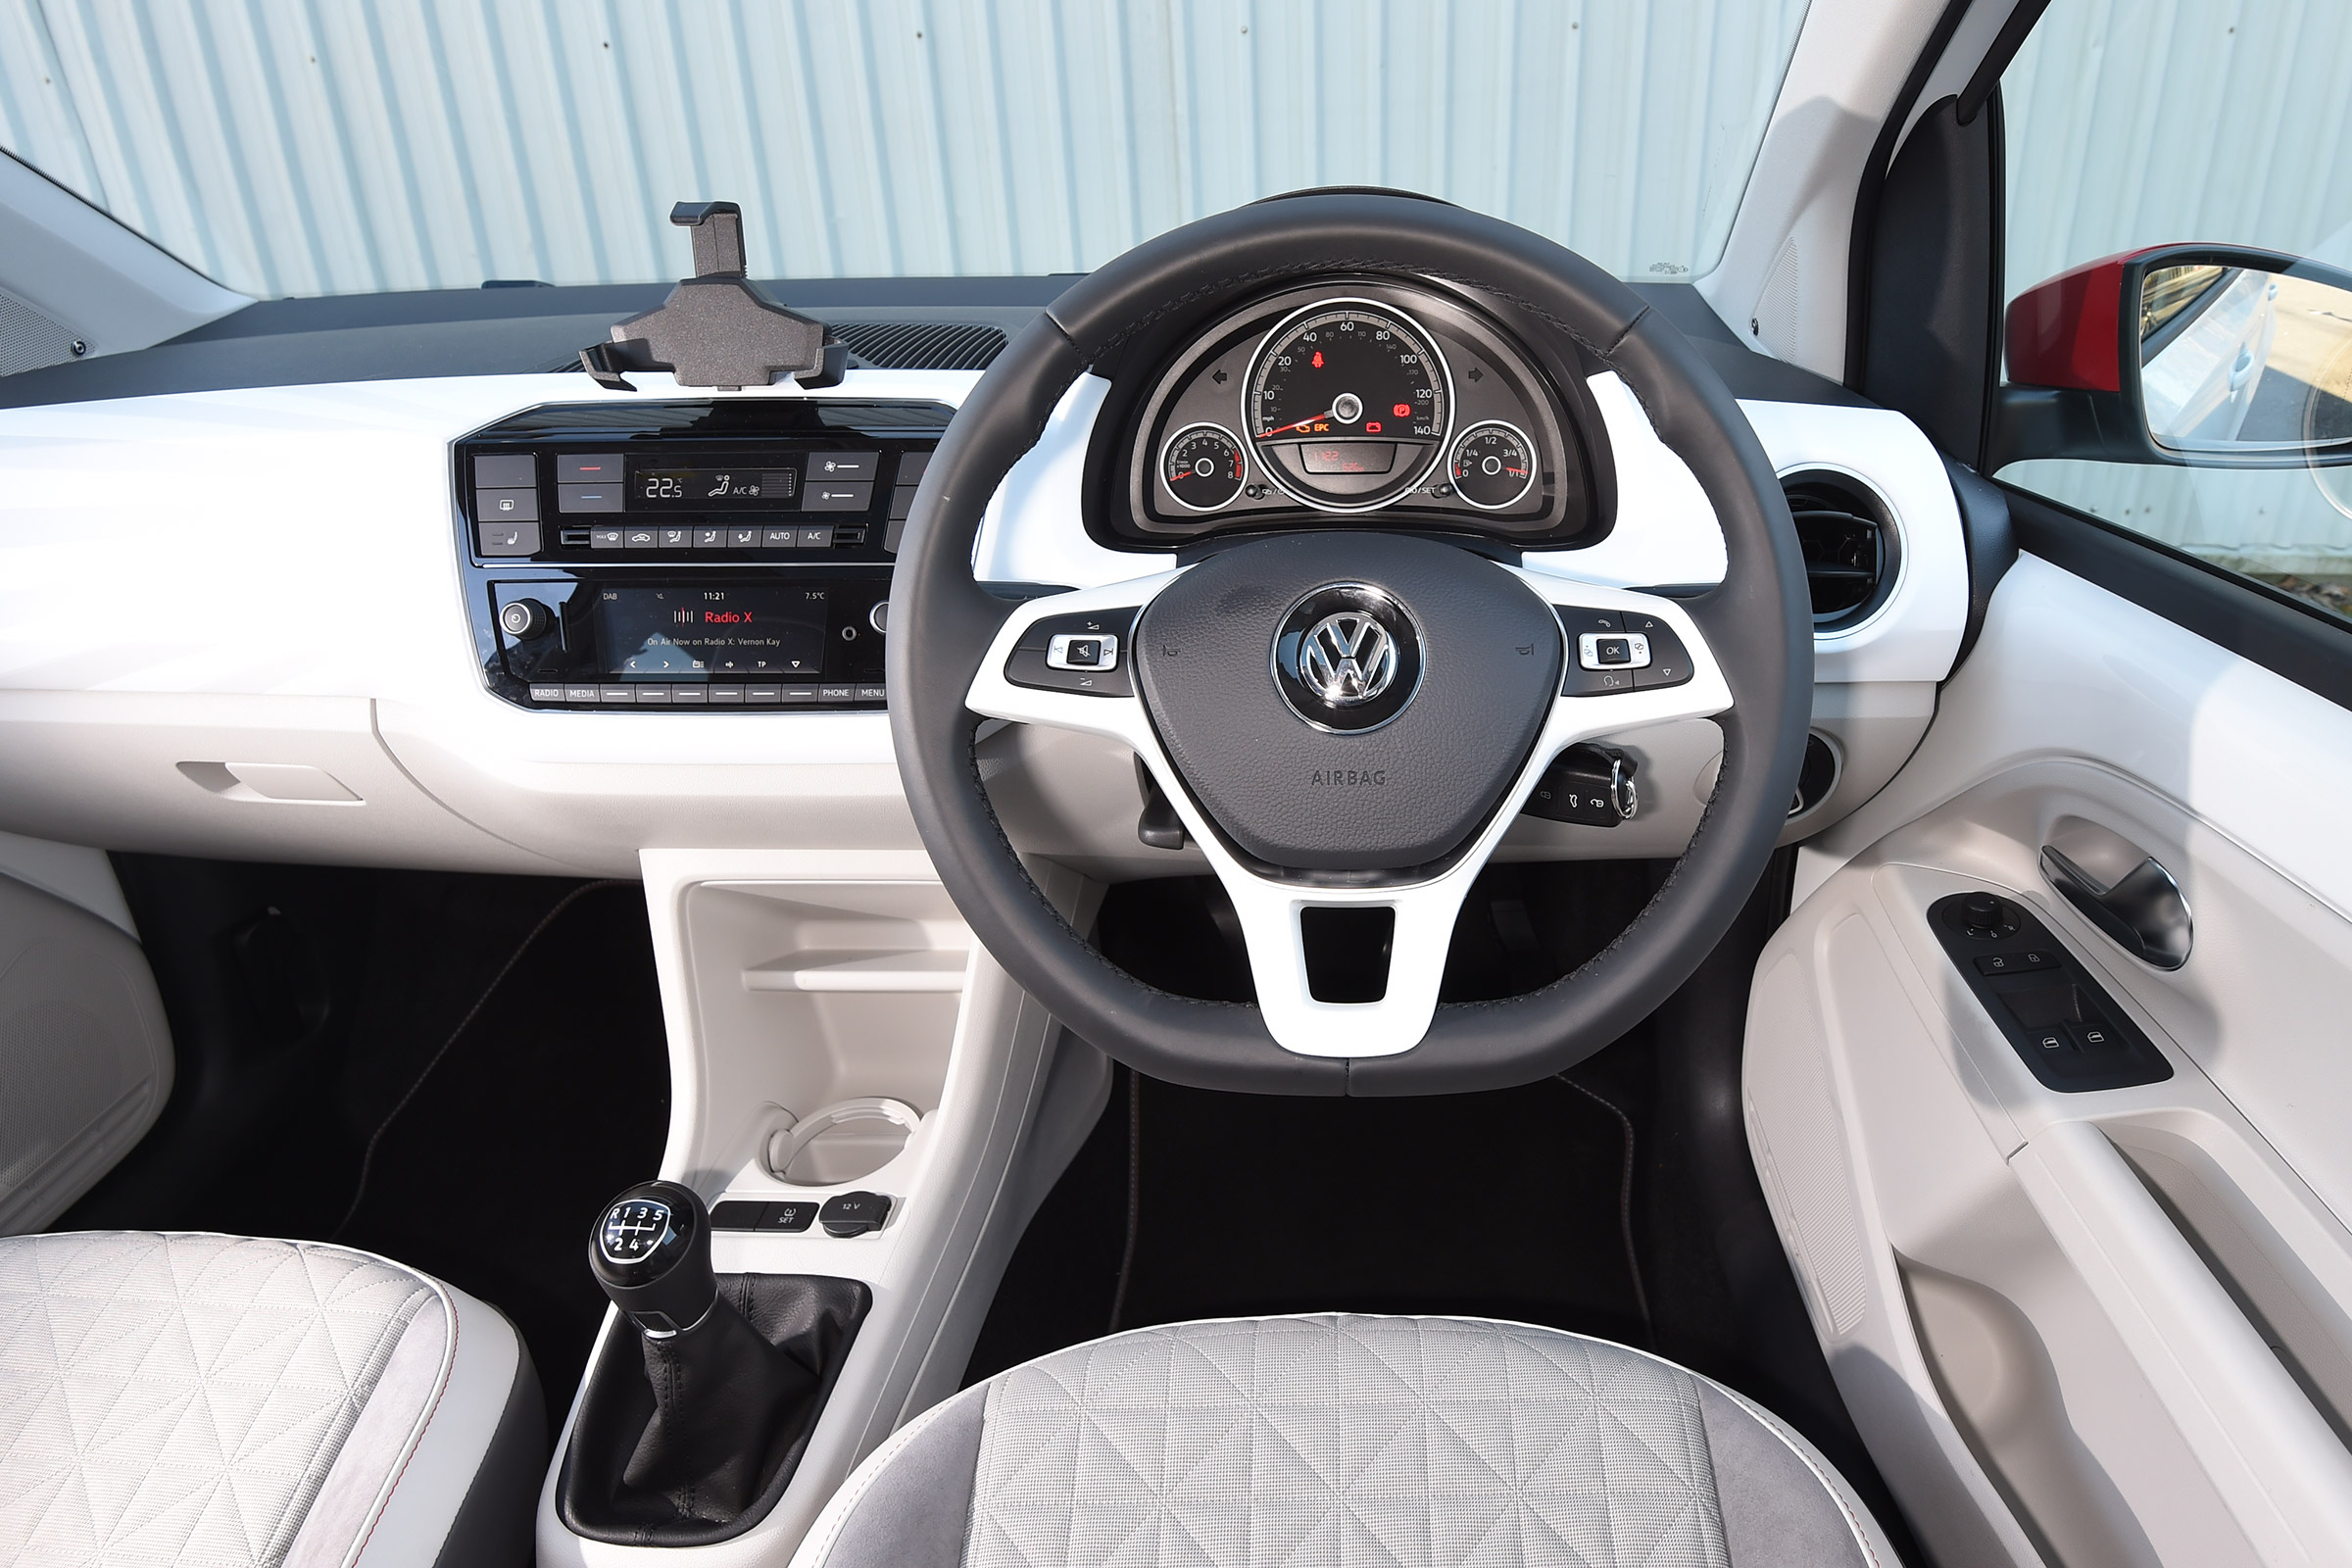 2017 Volkswagen Up Interior Driver Cockpit Steering And Dash (Photo 7 of 15)